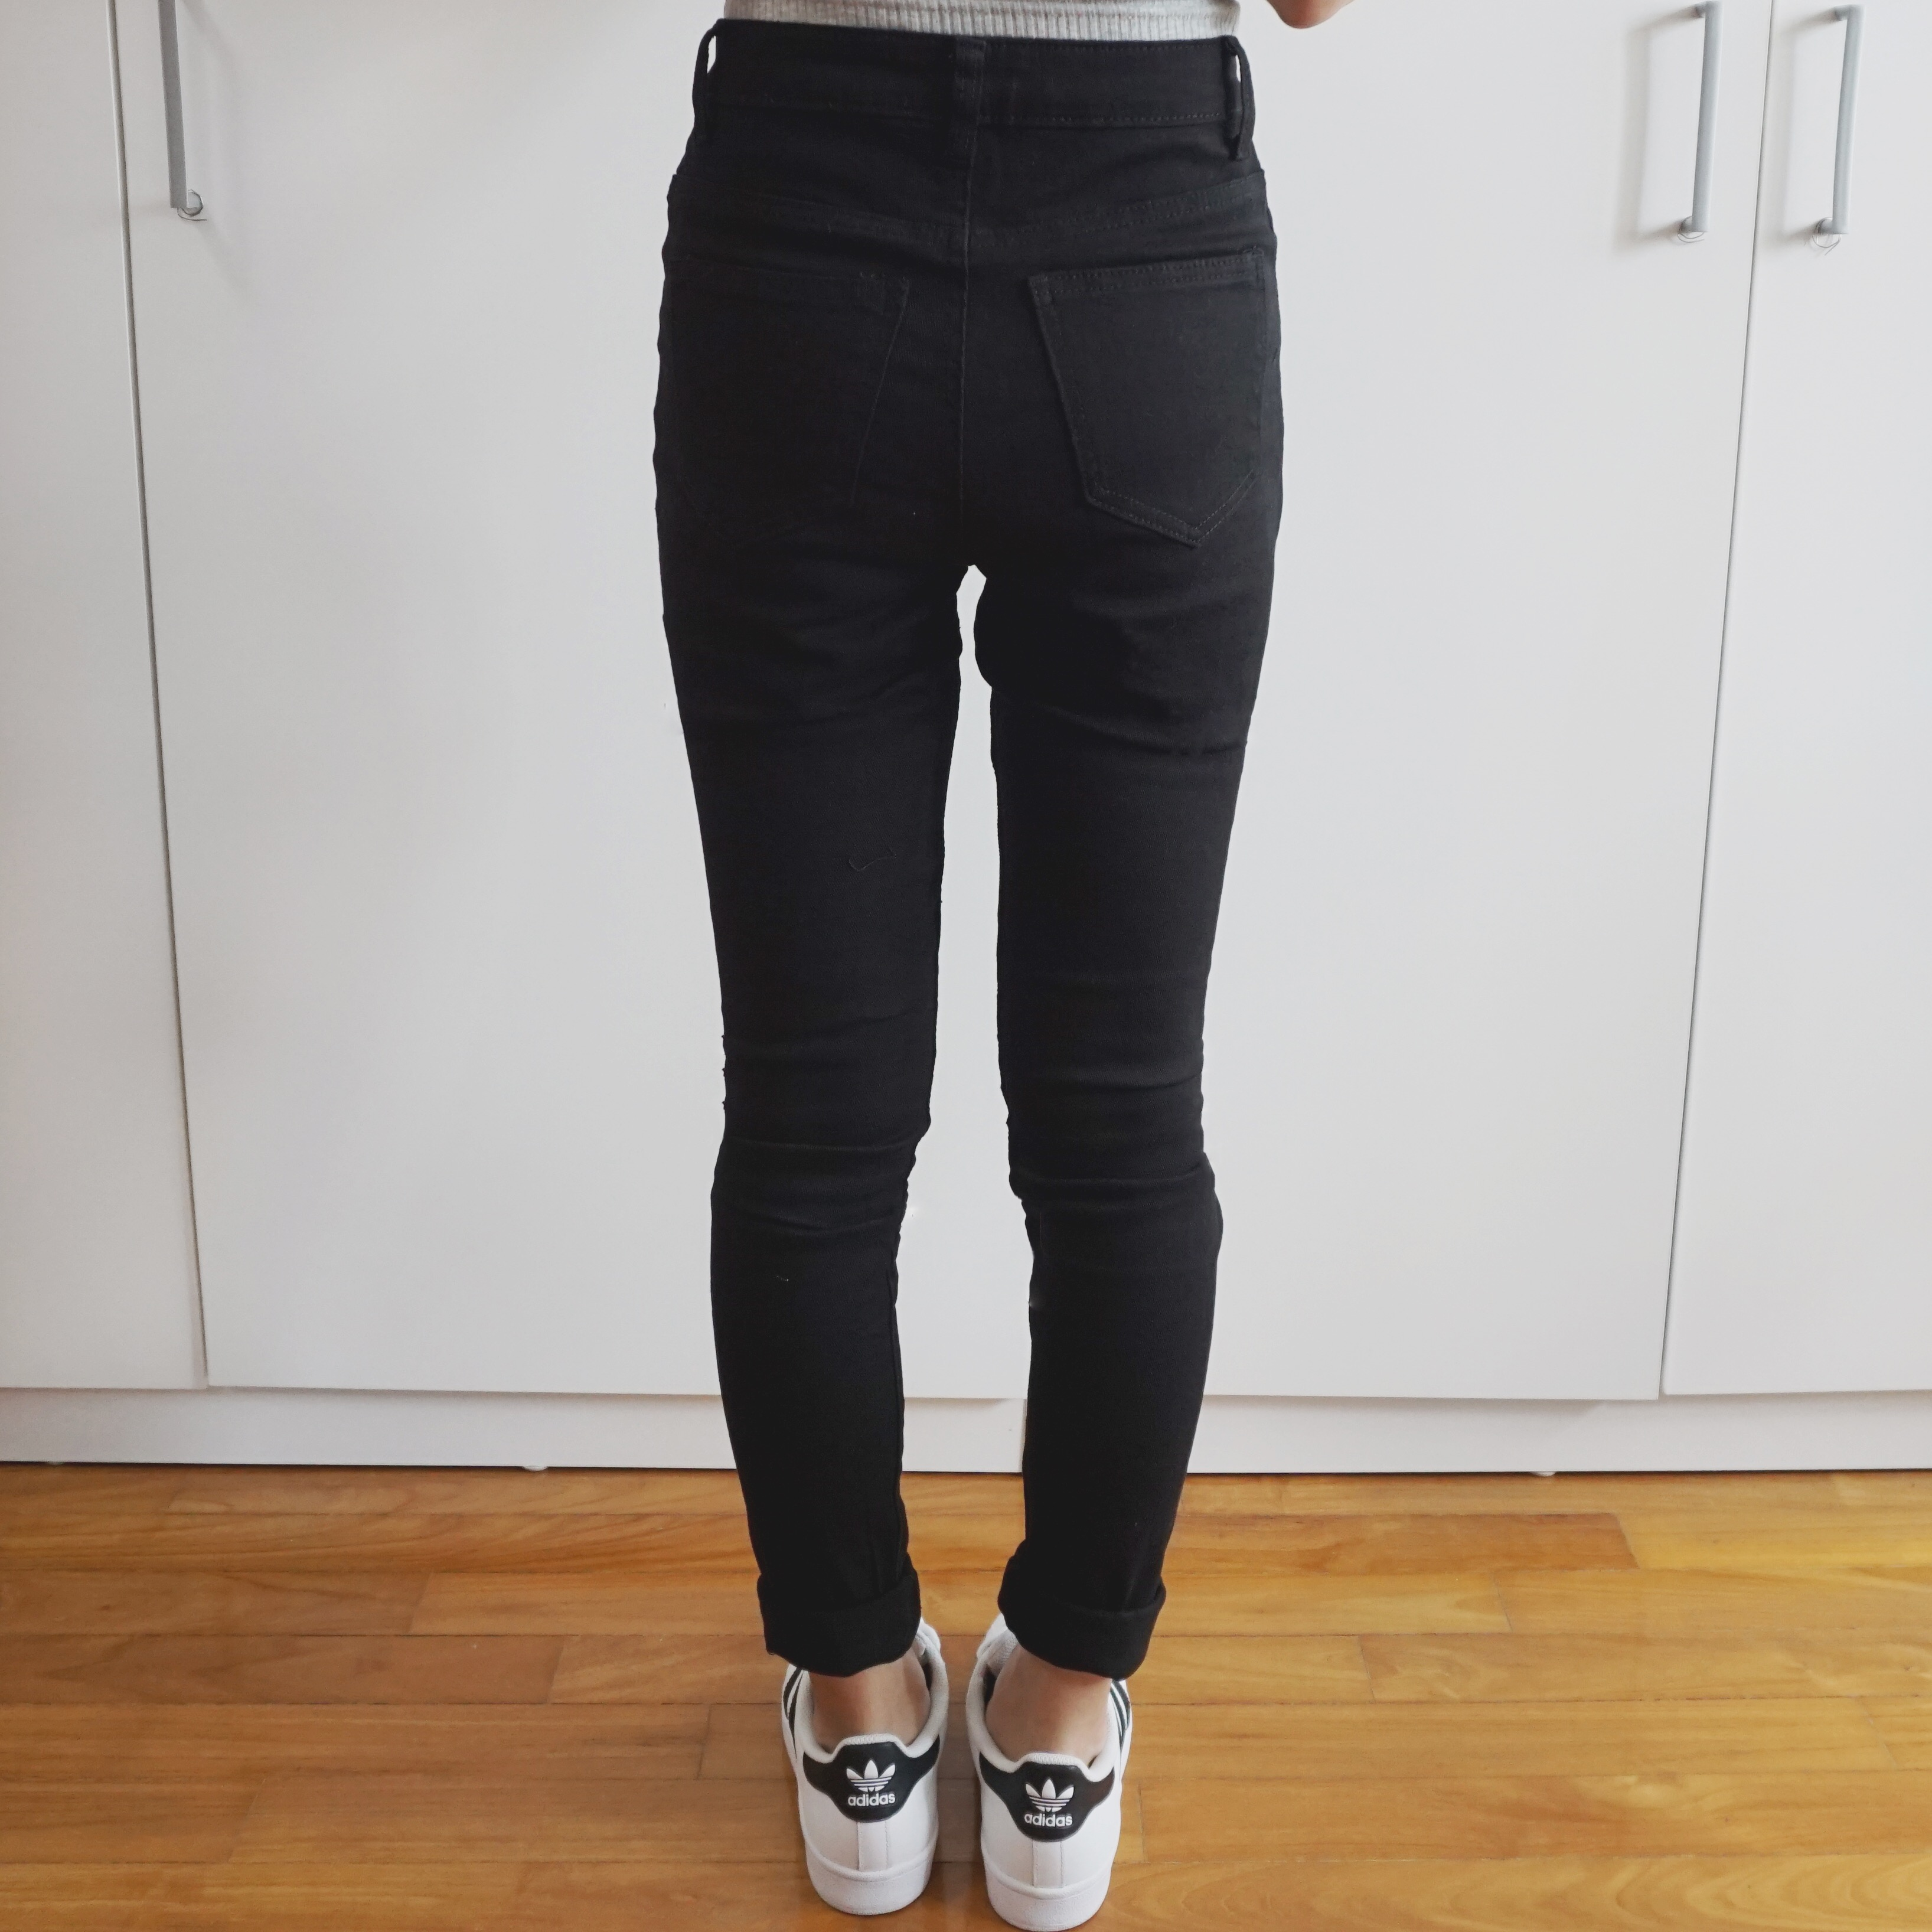 fe382a7d264 Destroyed Ripped High Waist Skinny Jeans (Black) · Megoosta Fashion ...